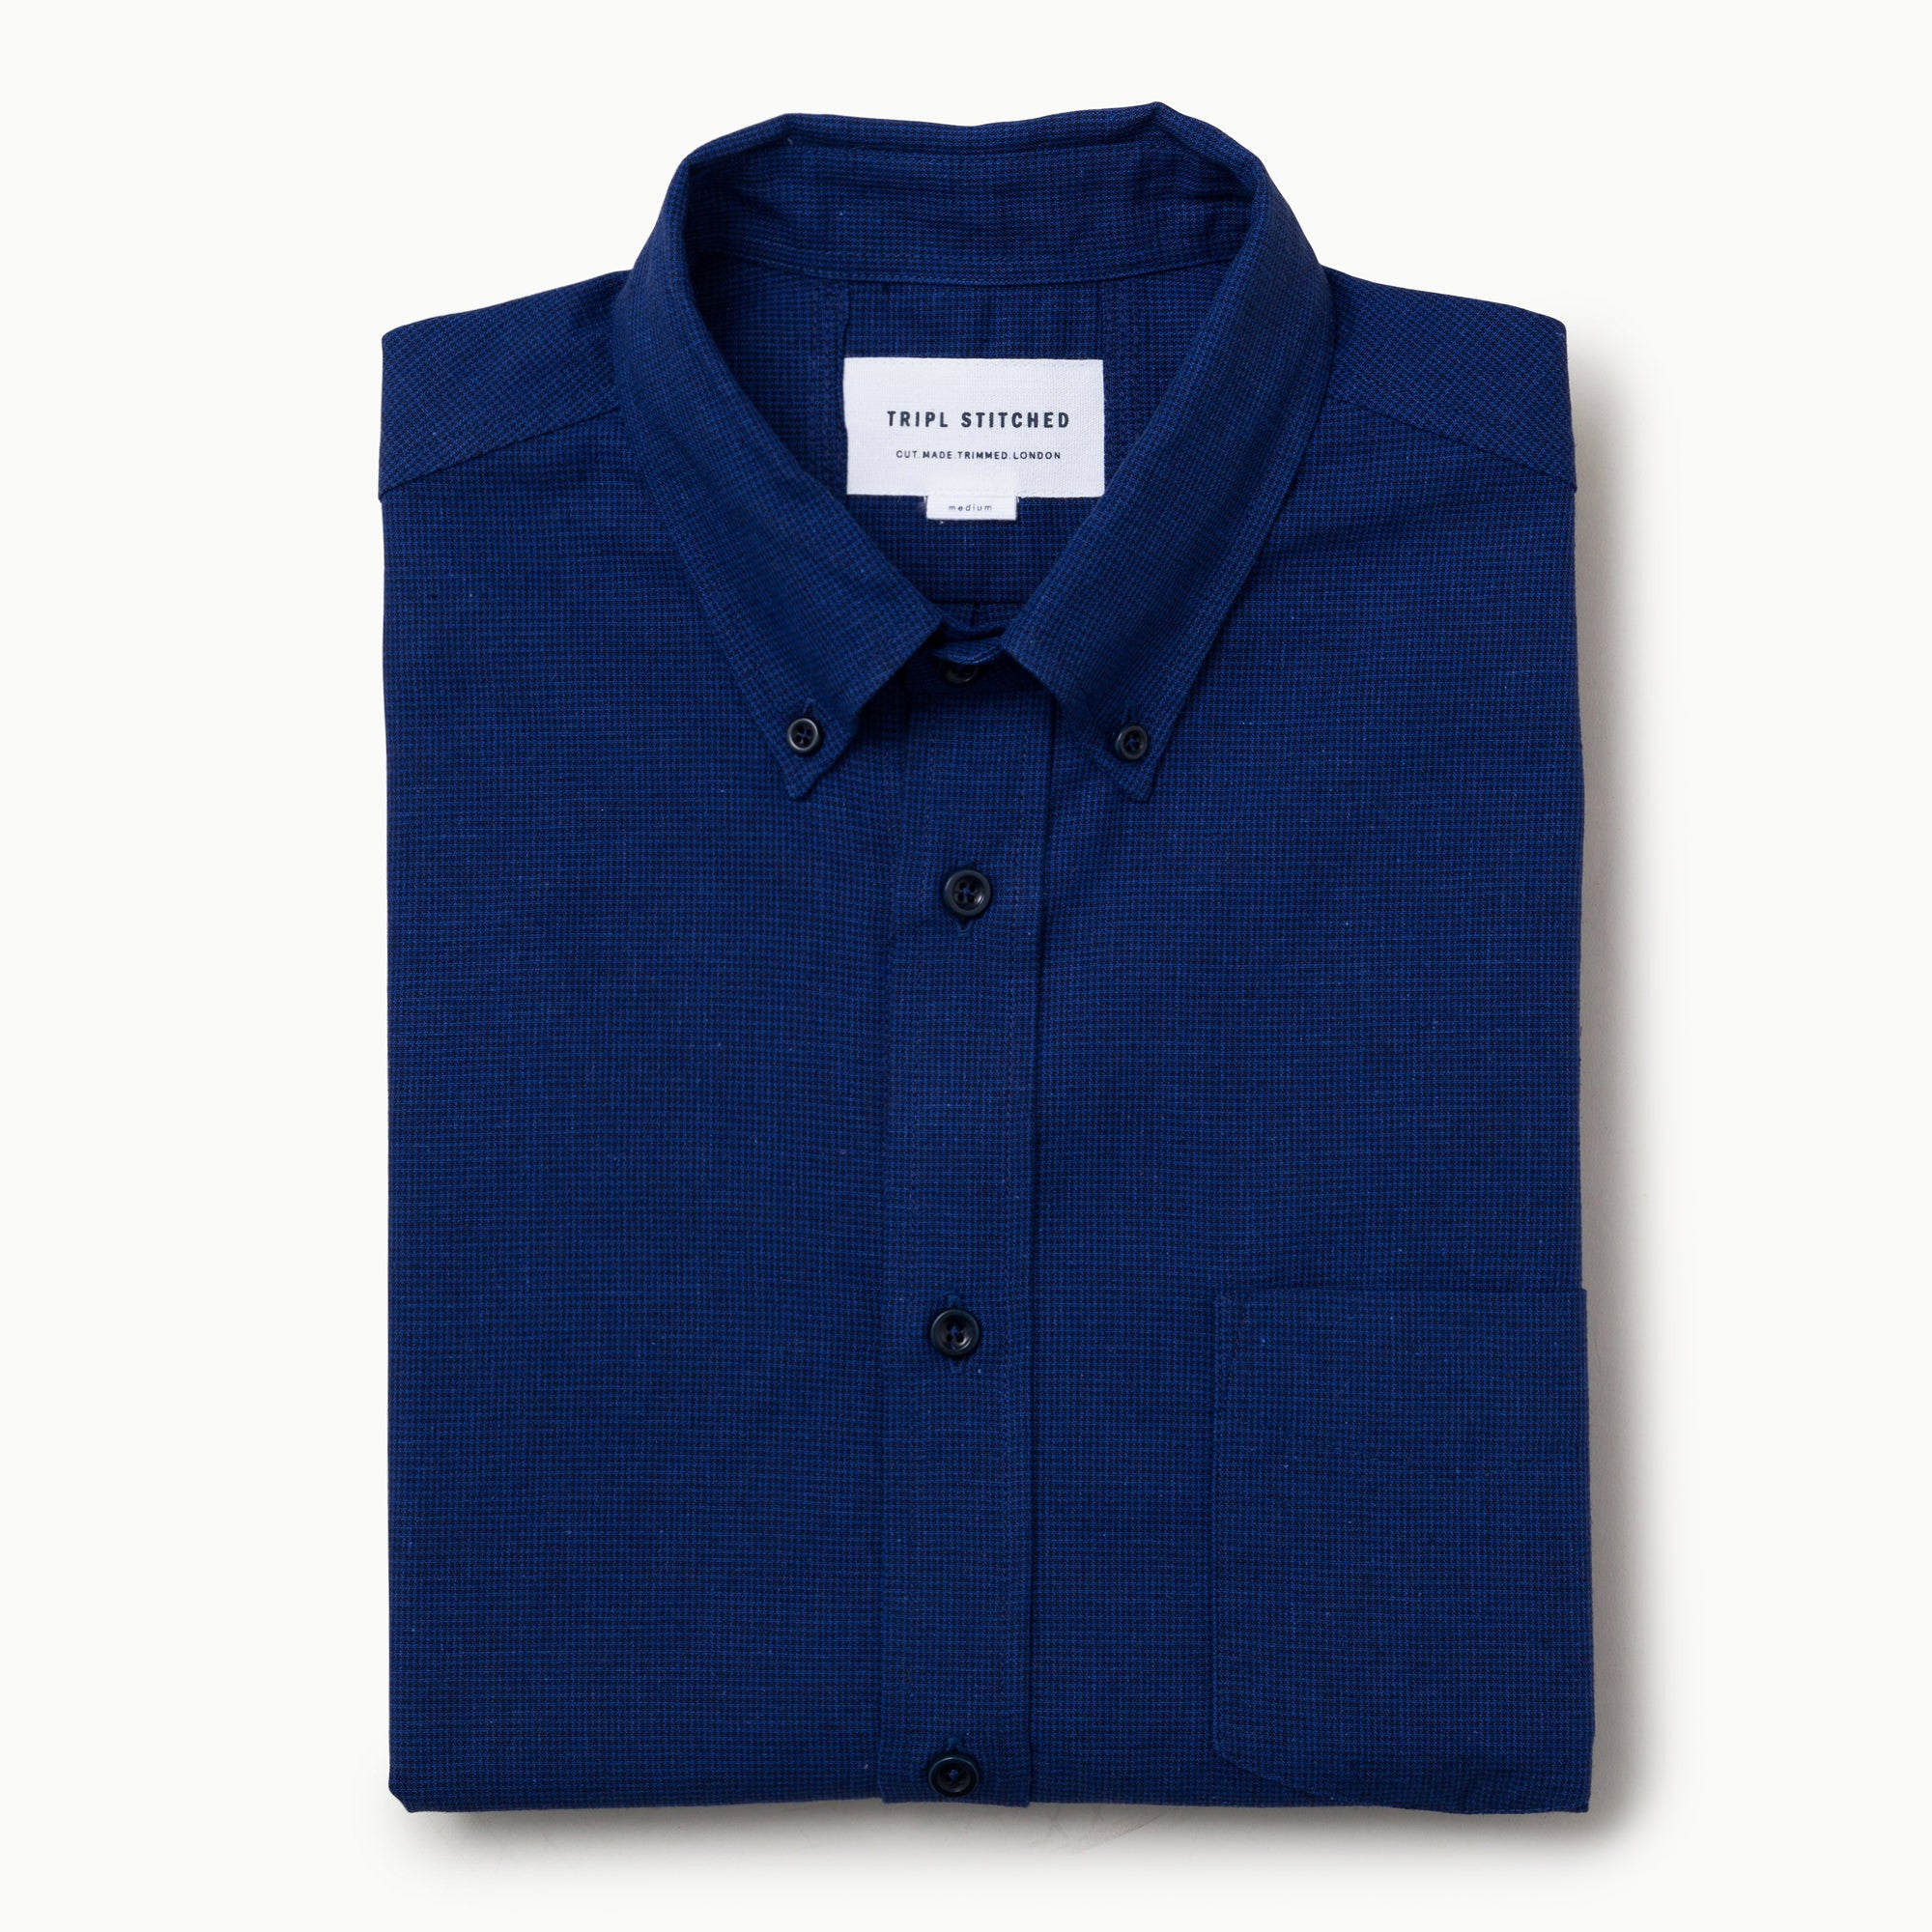 Mid blue/Navy cotton/linen dogtooth